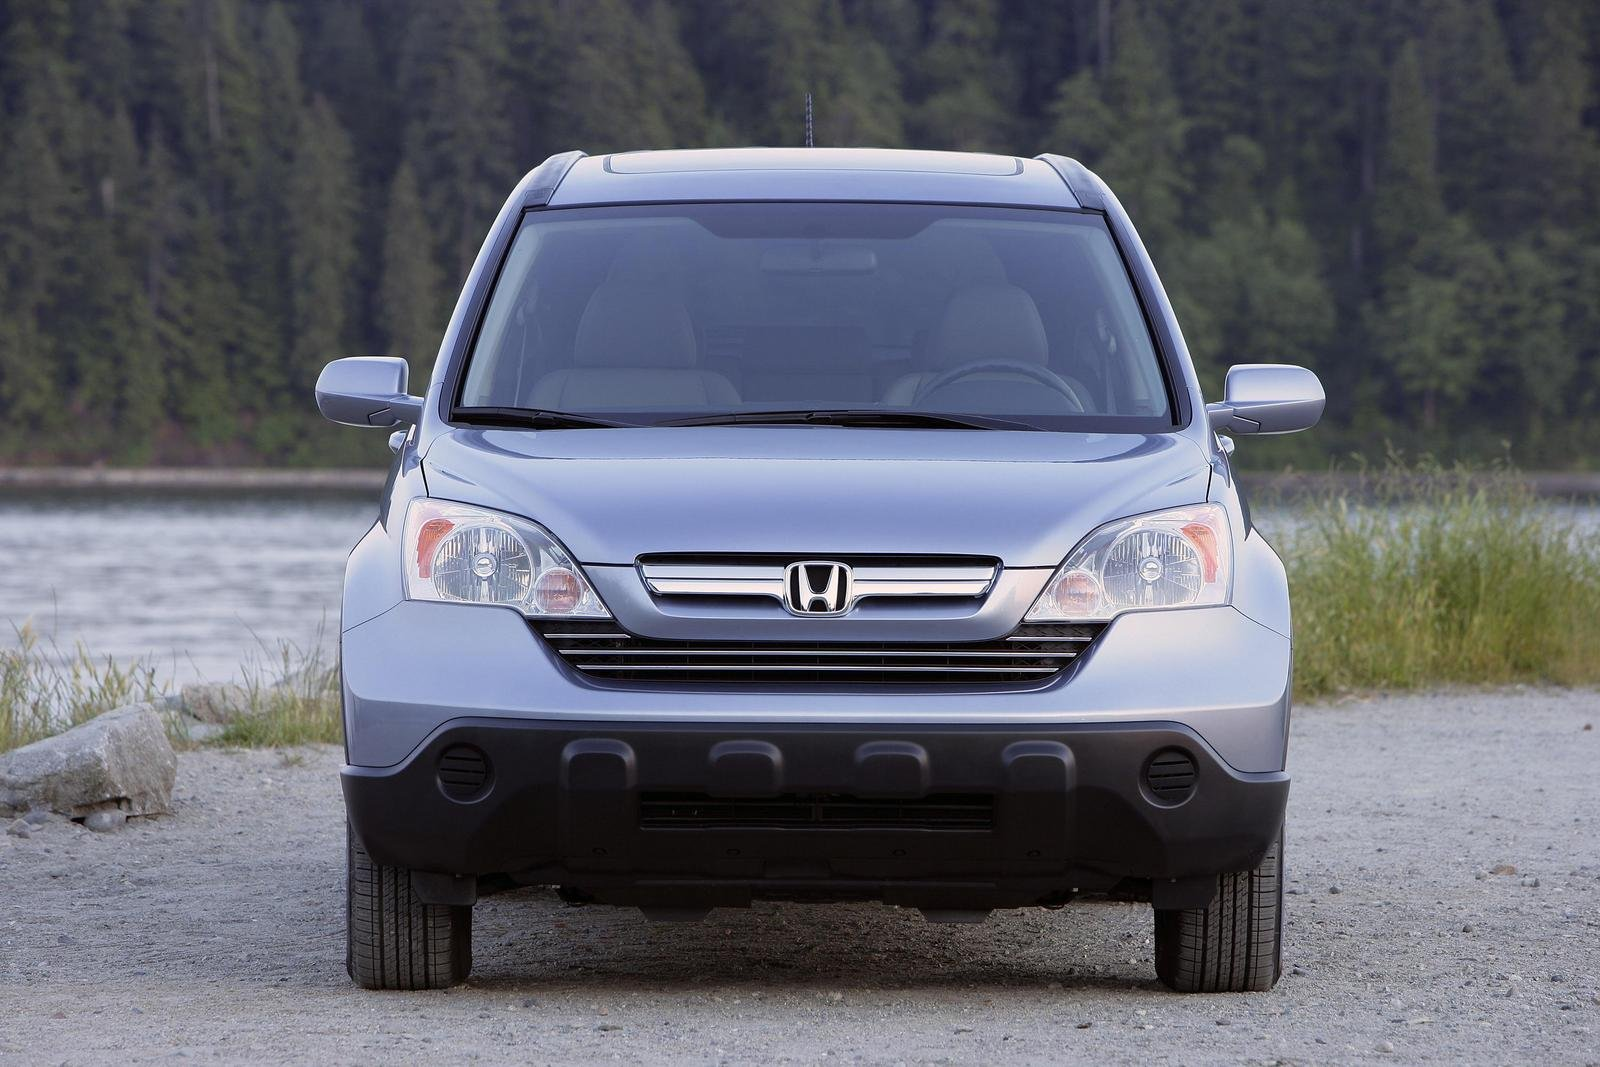 2008 Honda CR-V - Picture 196666 | car review @ Top Speed